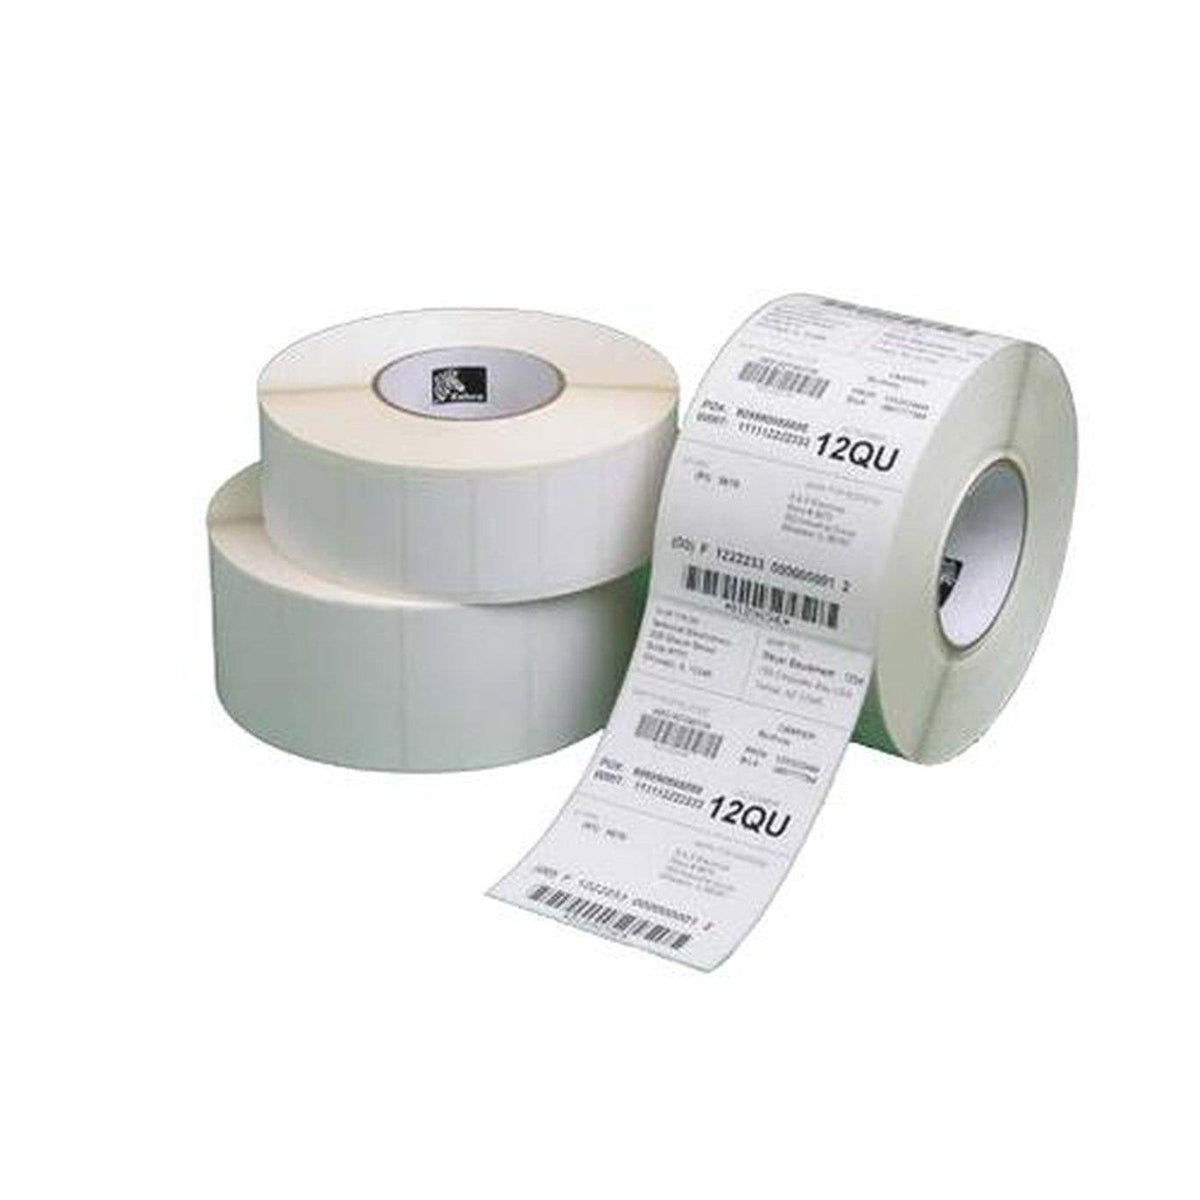 Zebra Z-Perform 1000D Uncoated Direct Thermal Paper Label 76mm x 51mm, White | 3012911-T Consumable Zebra